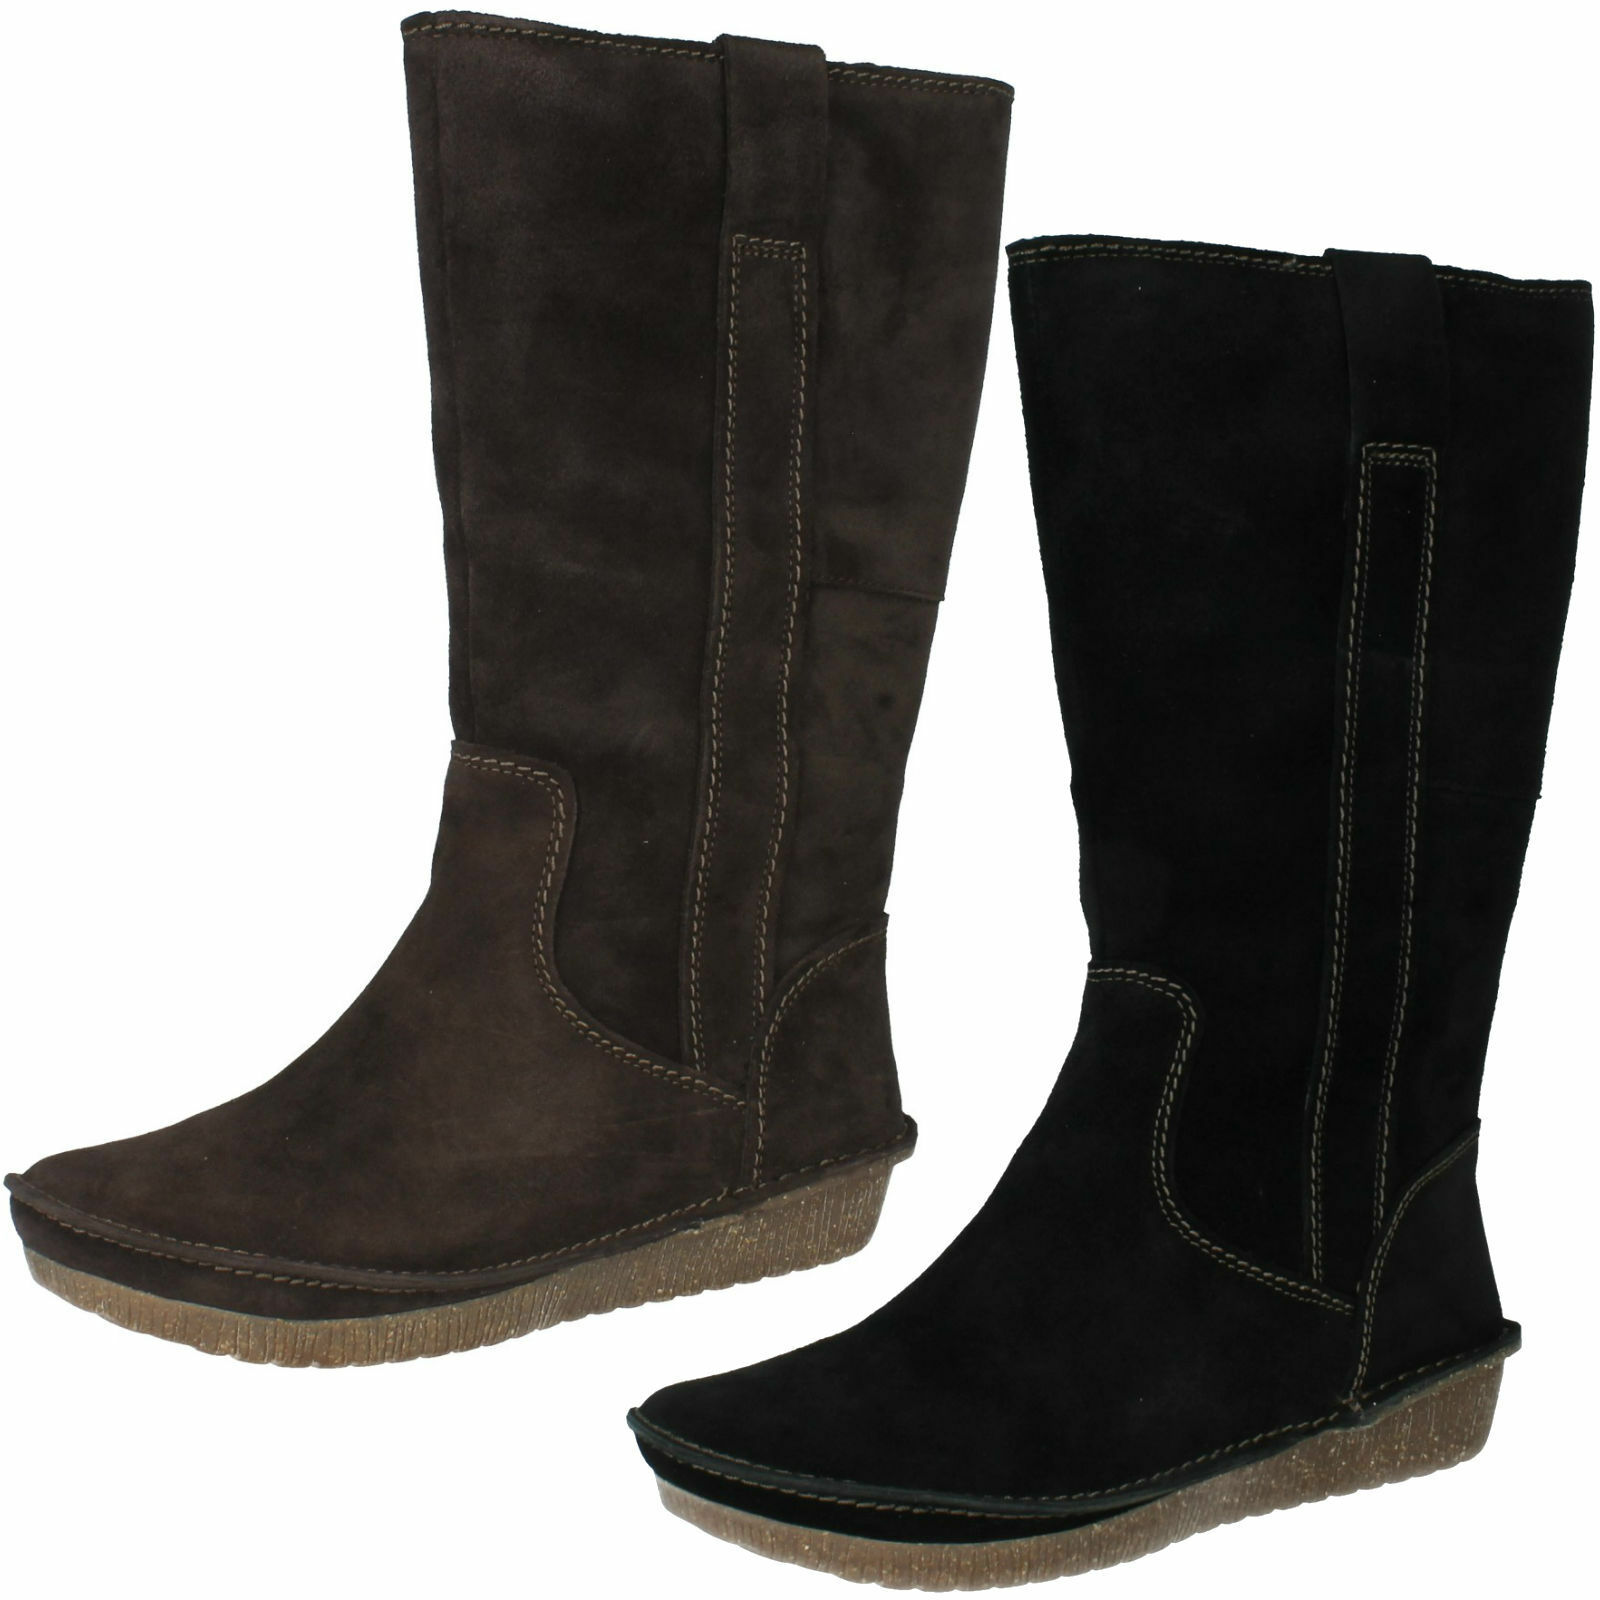 LADIES CLARKS SUEDE PULL ON FLAT WARM LINED LIMA MID CALF WINTER BOOTS LIMA LINED RHAPSODY 870013